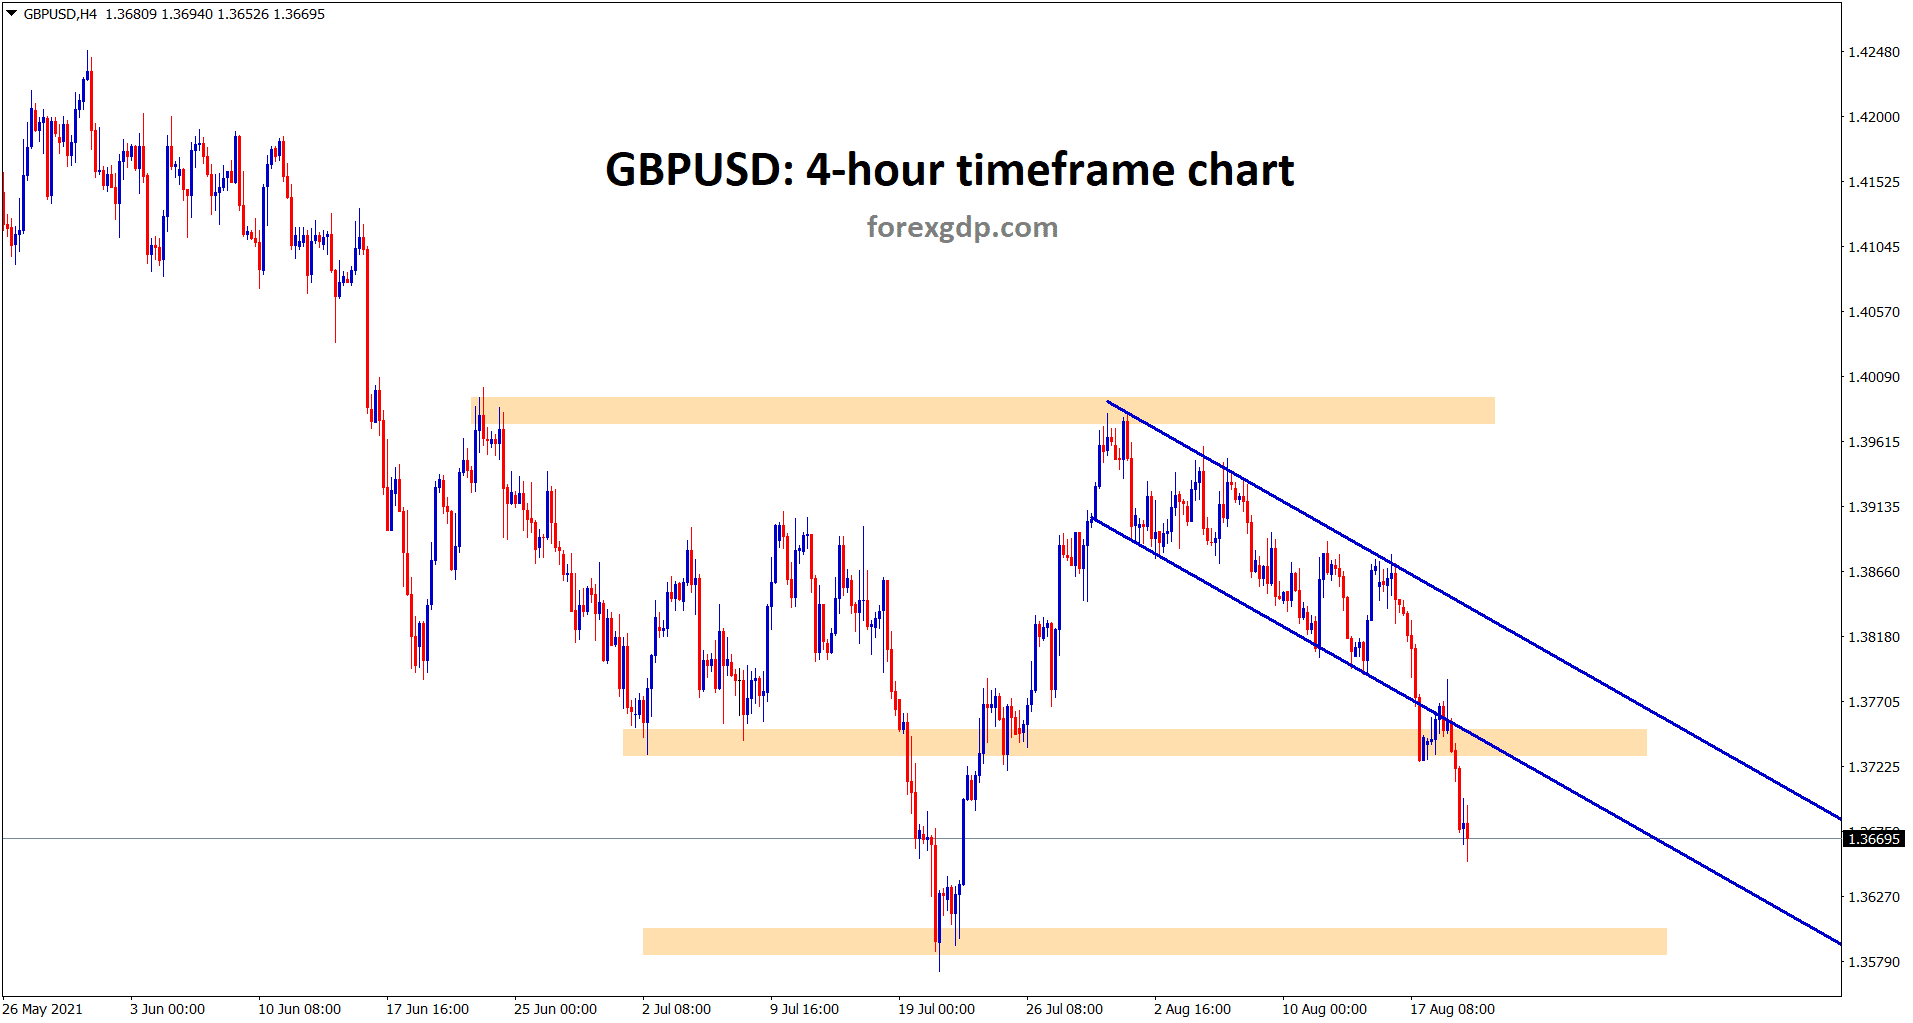 GBPUSD has broken the bottom of the descending channel and horizontal support